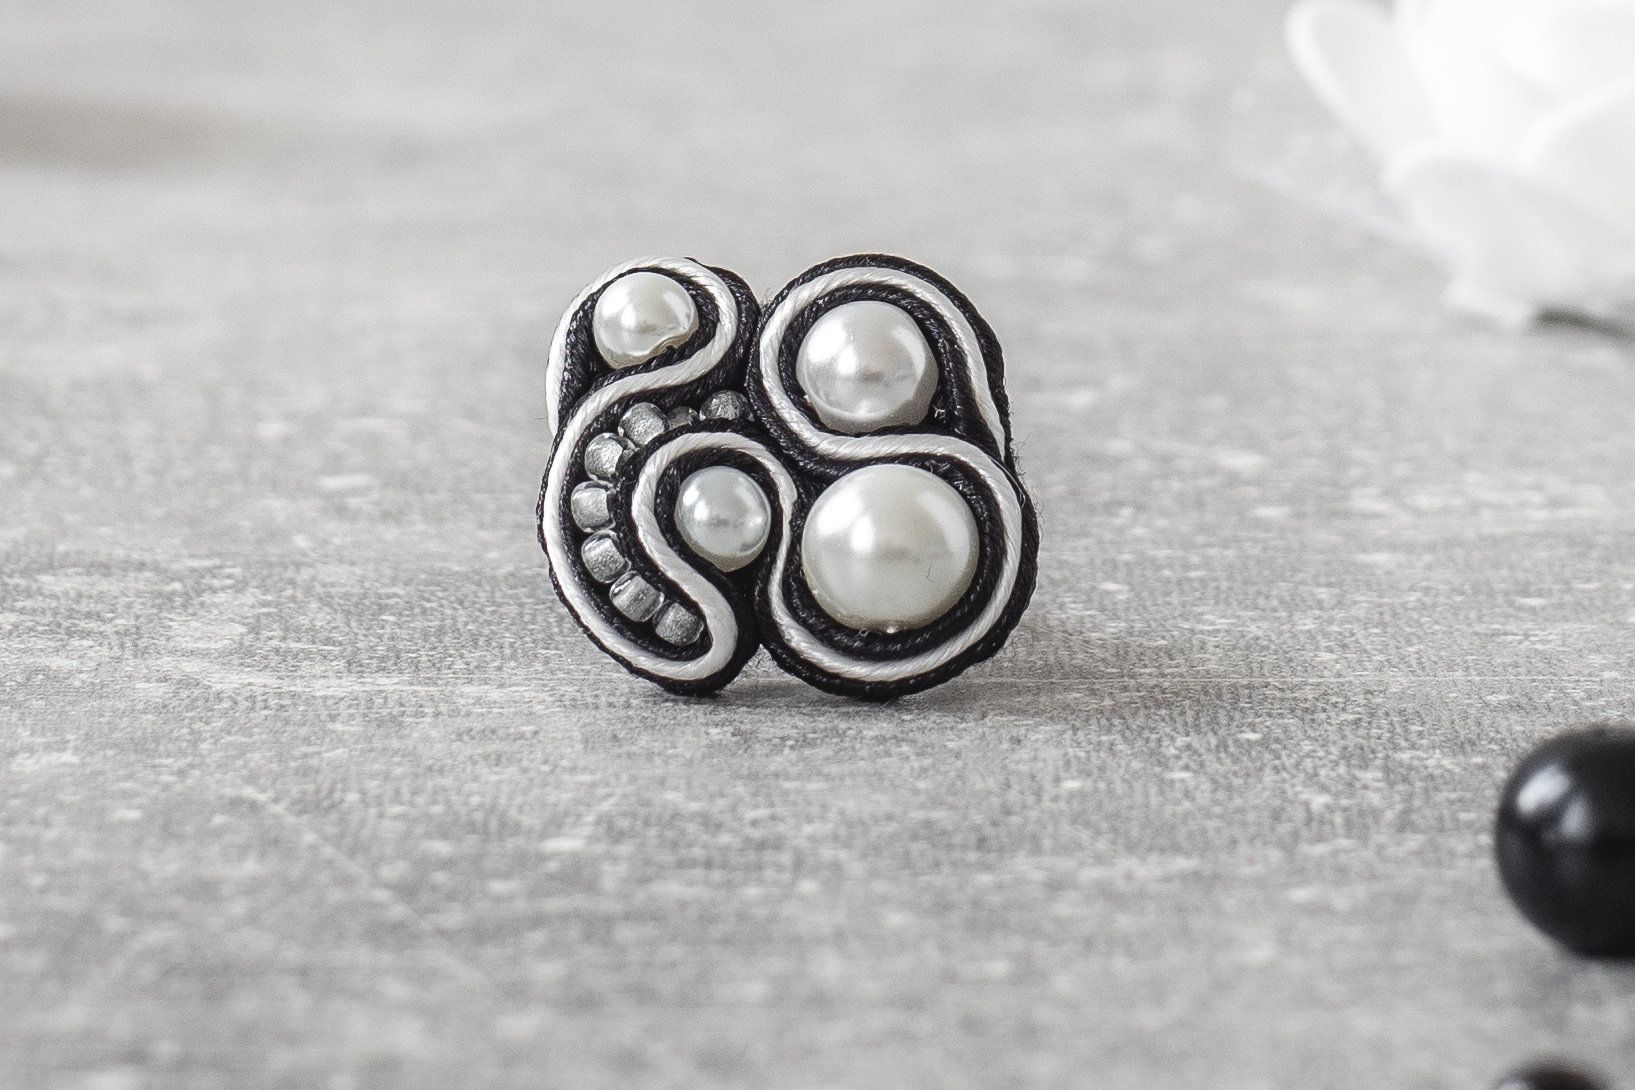 Black and white Soutache Ring / Soutache Jewelry / Elegant Goth Ring / Adjustable Ring / Handsewn Jewelry / Cruelty Free / Casual Goth Store #casualgoth